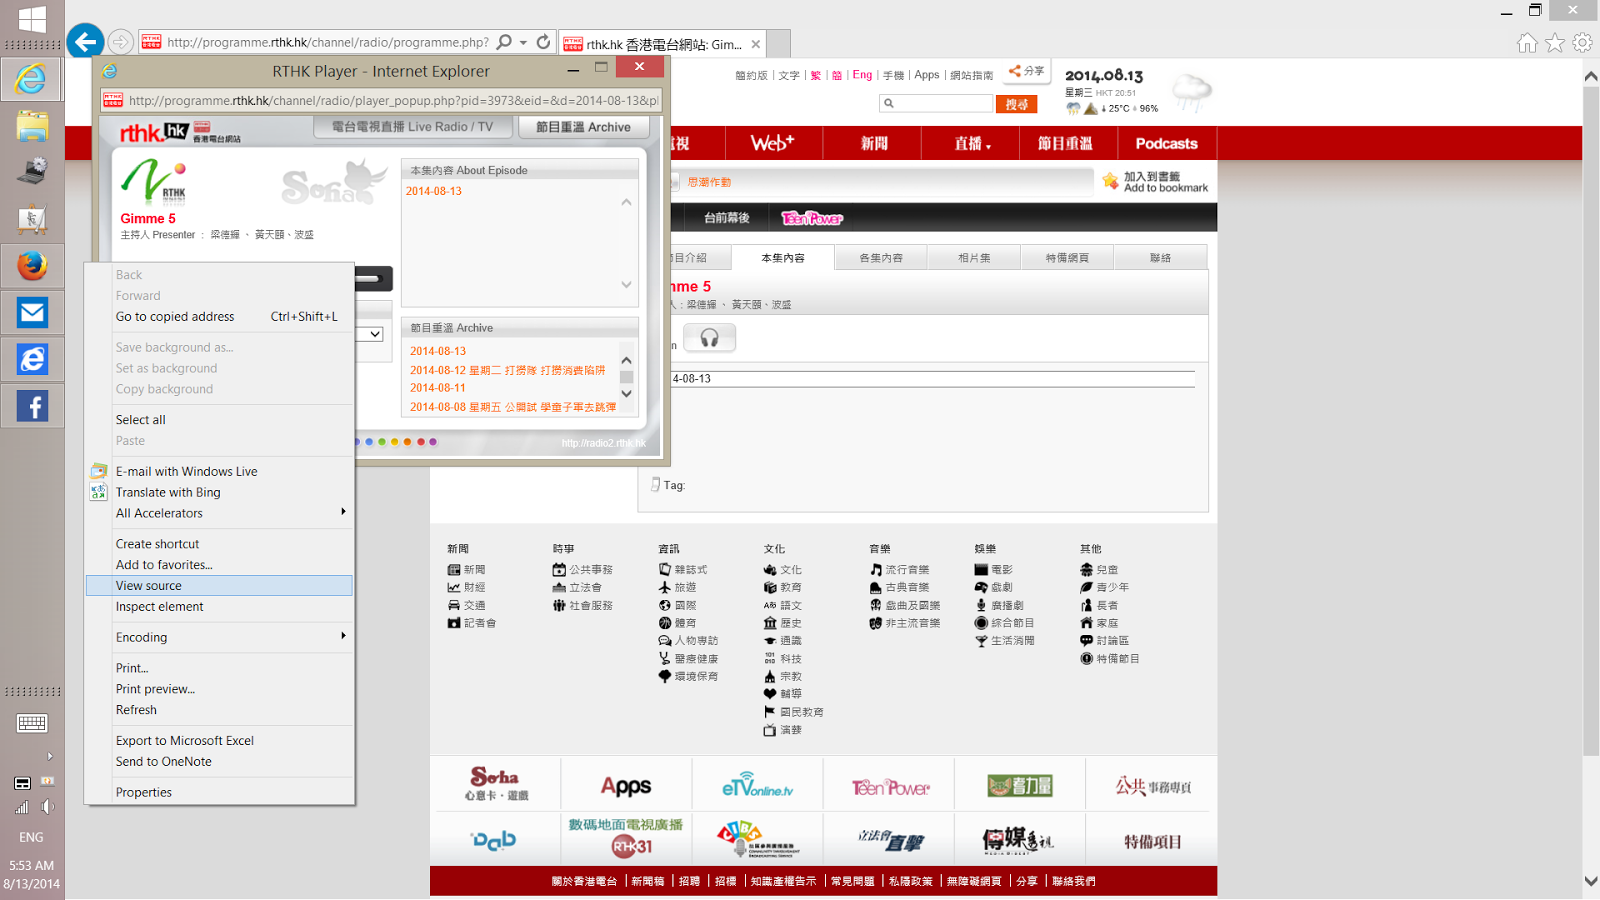 Eddie's Tech Notes: Download RTHK audio programme archive